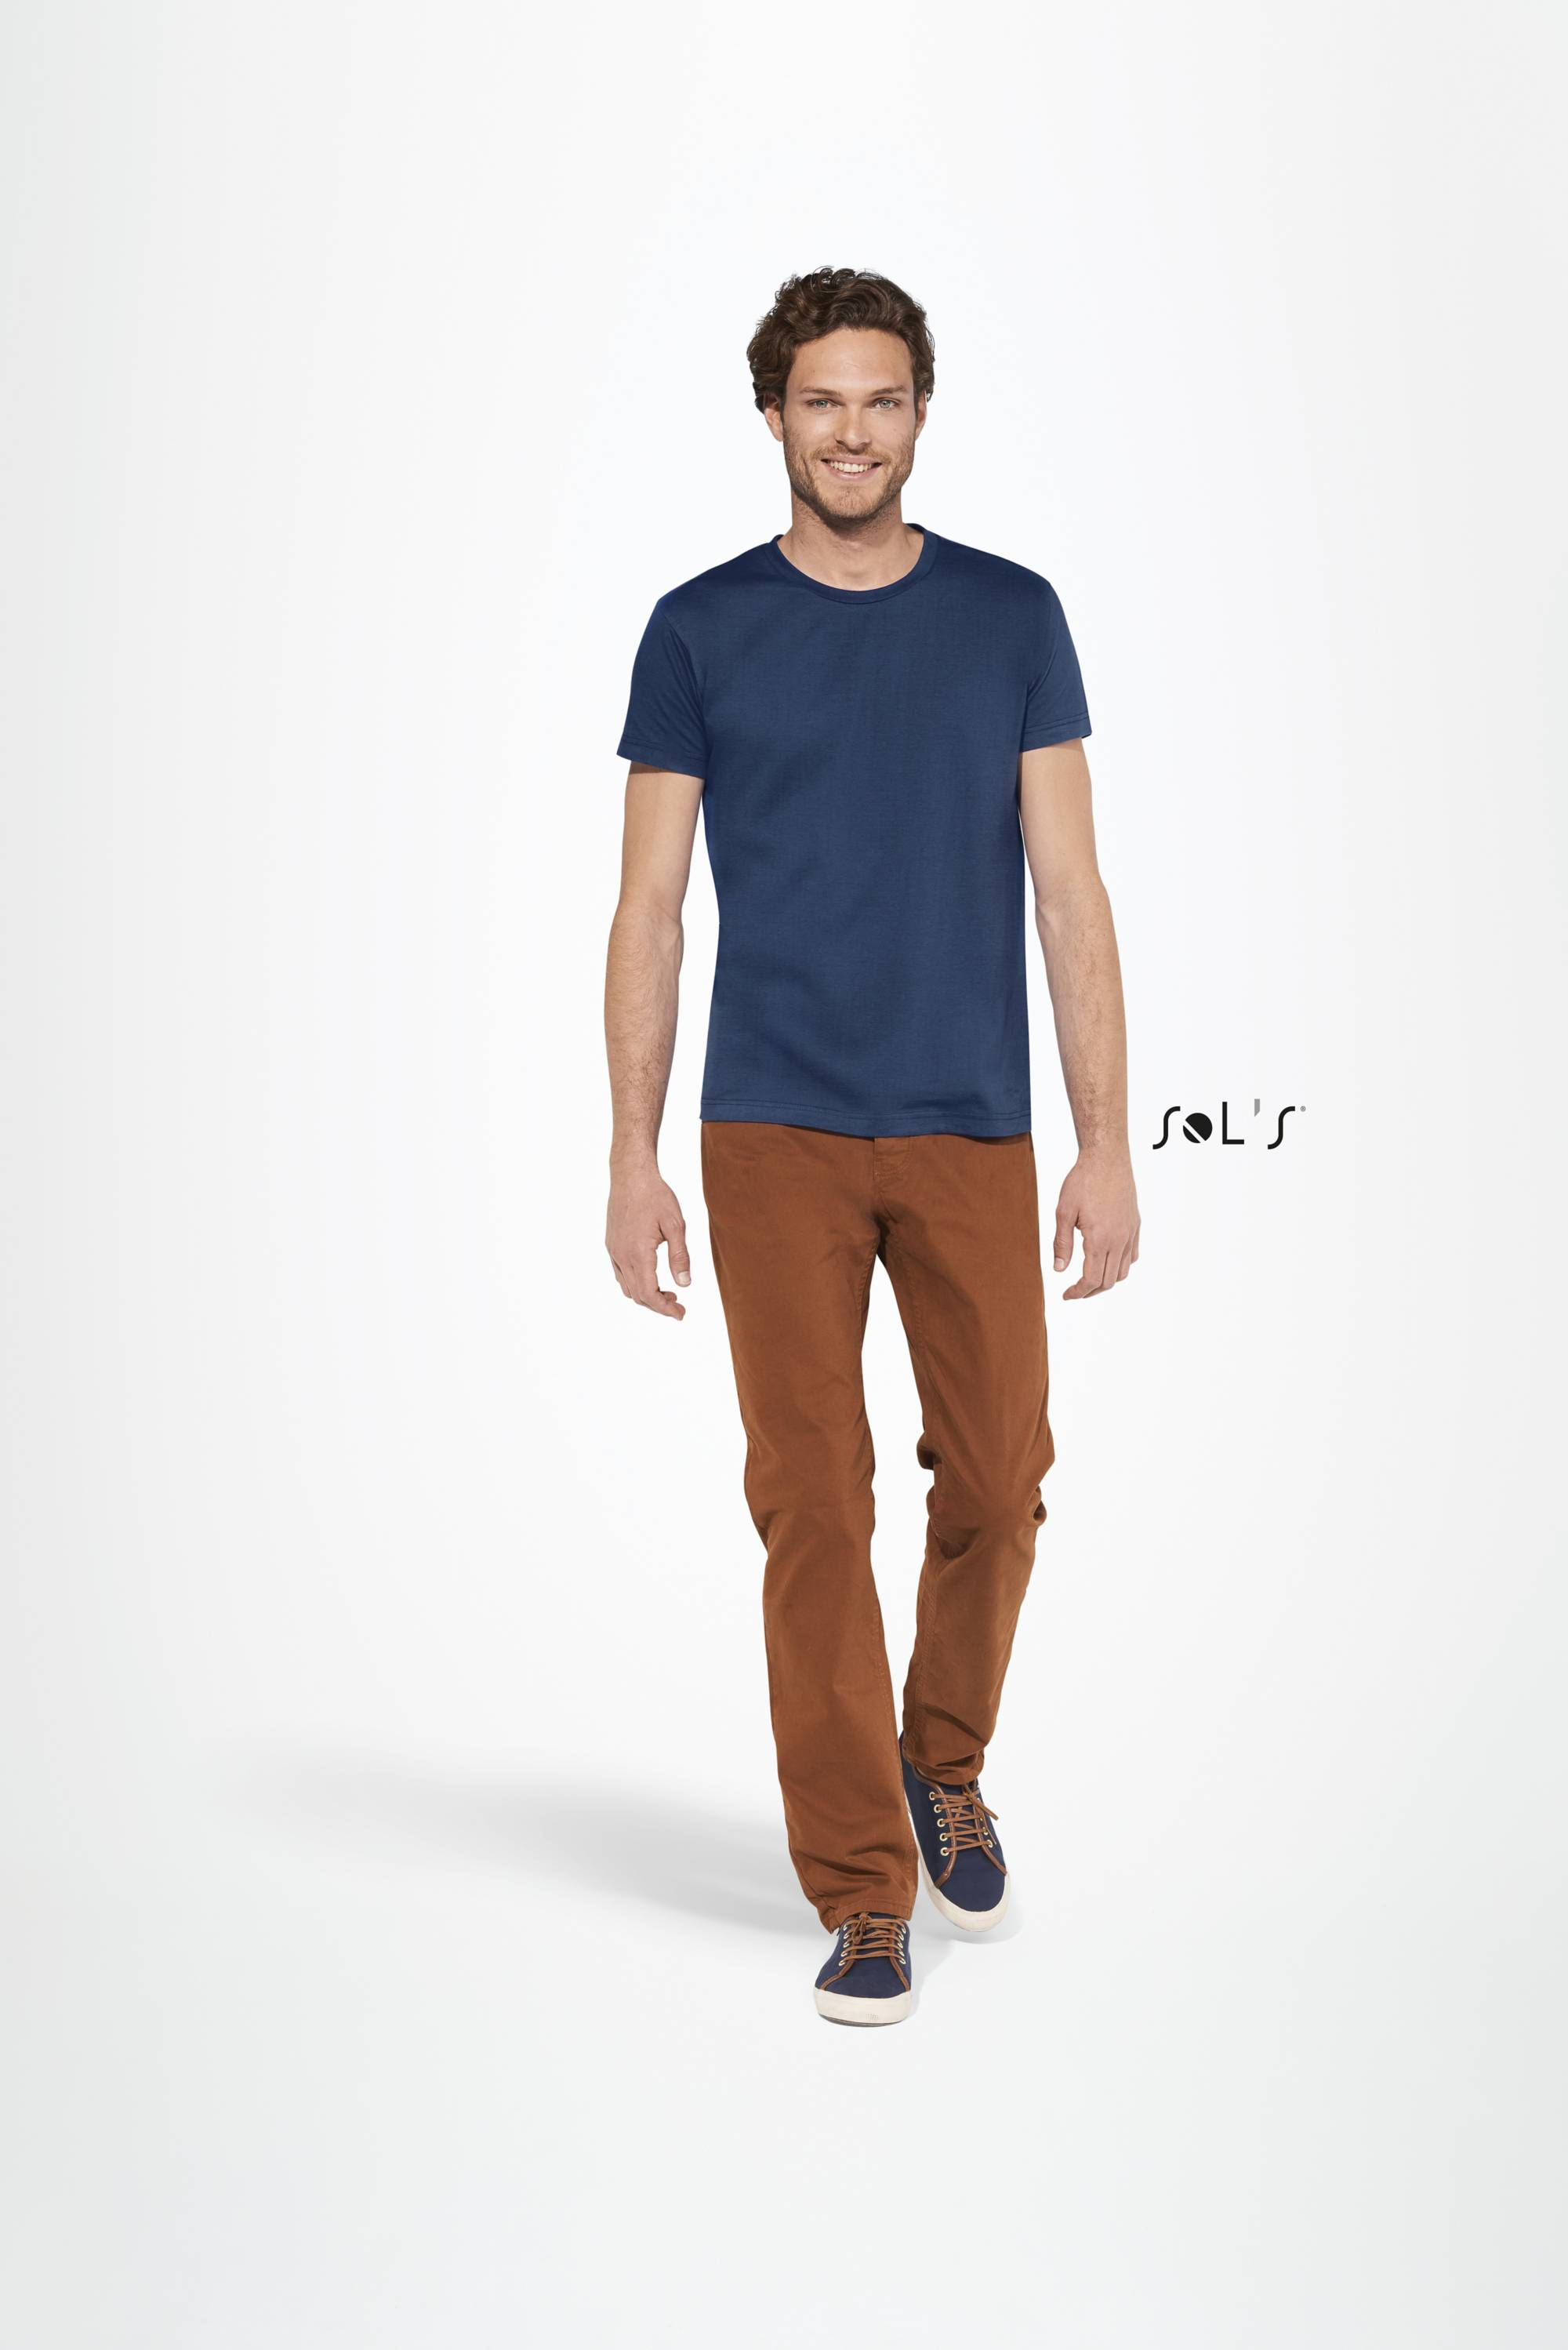 7722a1725ae5 SOL S Imperial Fit Ανδρικό μπλουζάκι